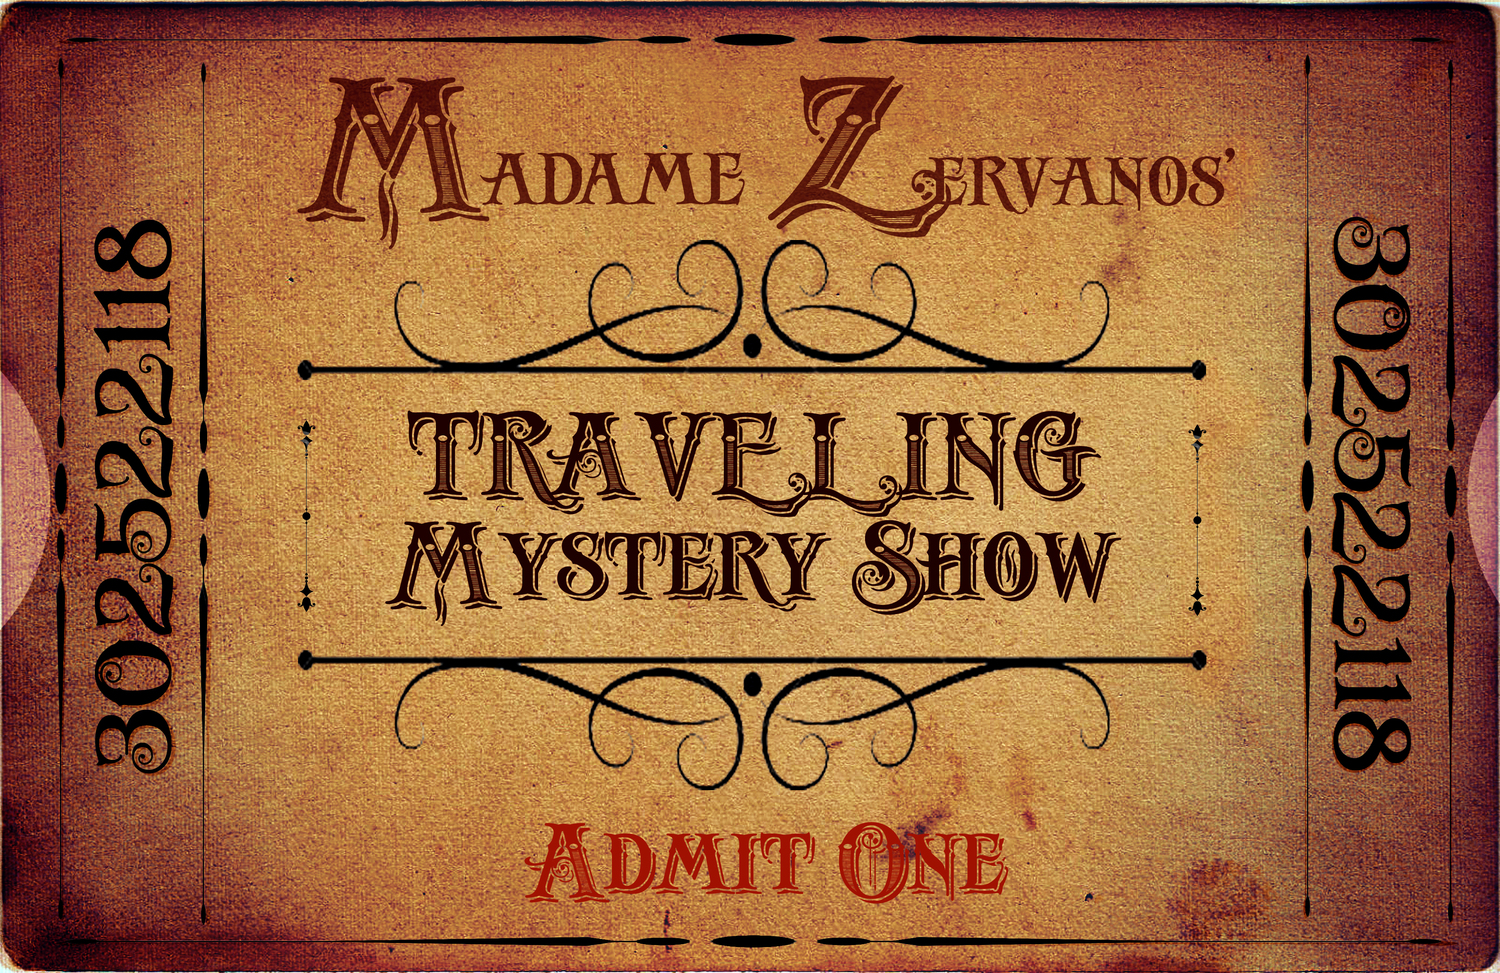 Madame Zervanos' Traveling Mystery Show